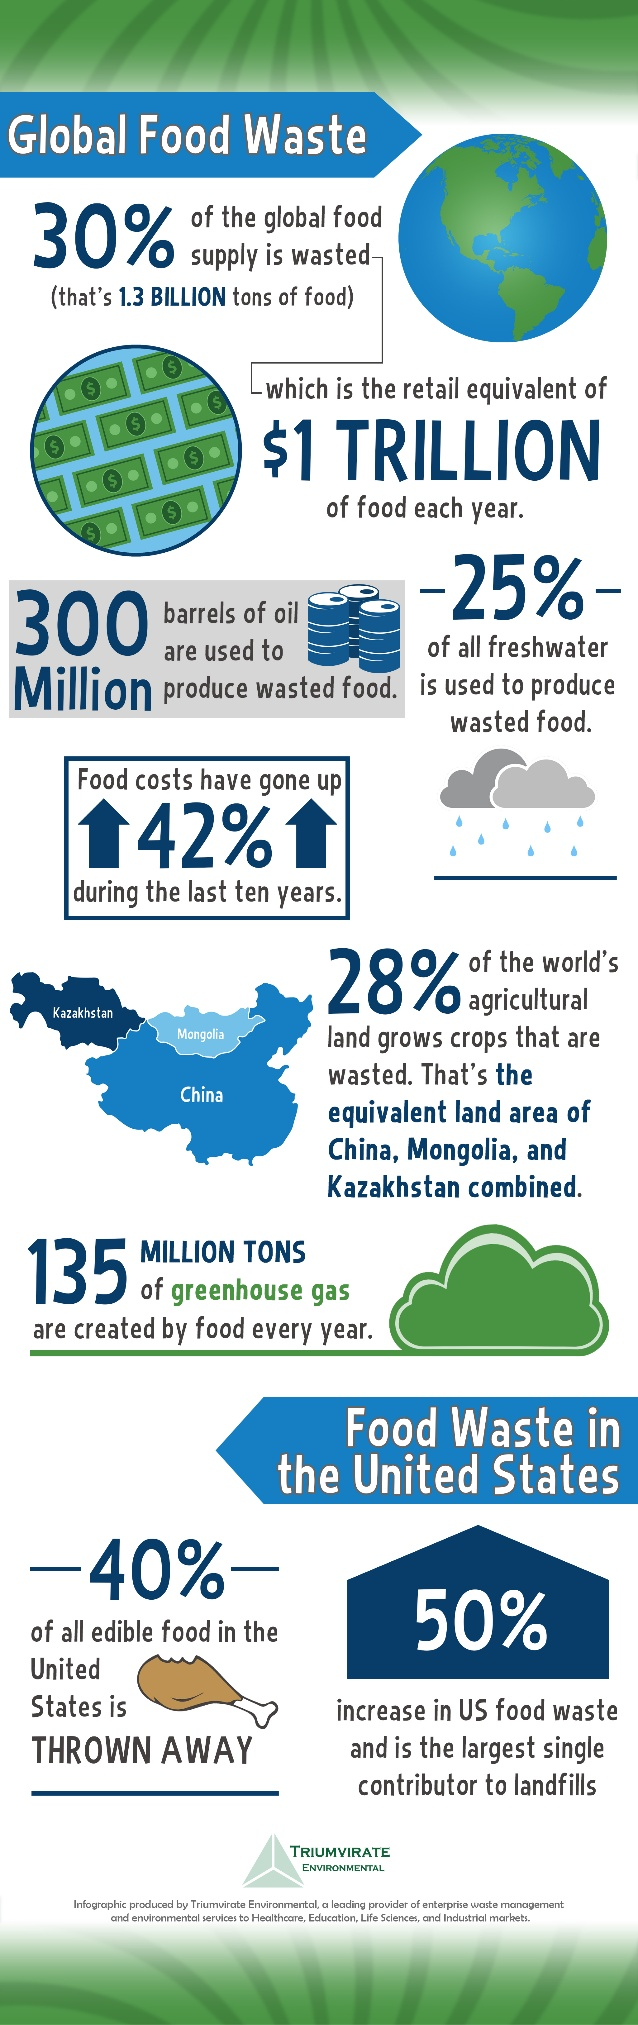 Global Food Waste Infographic